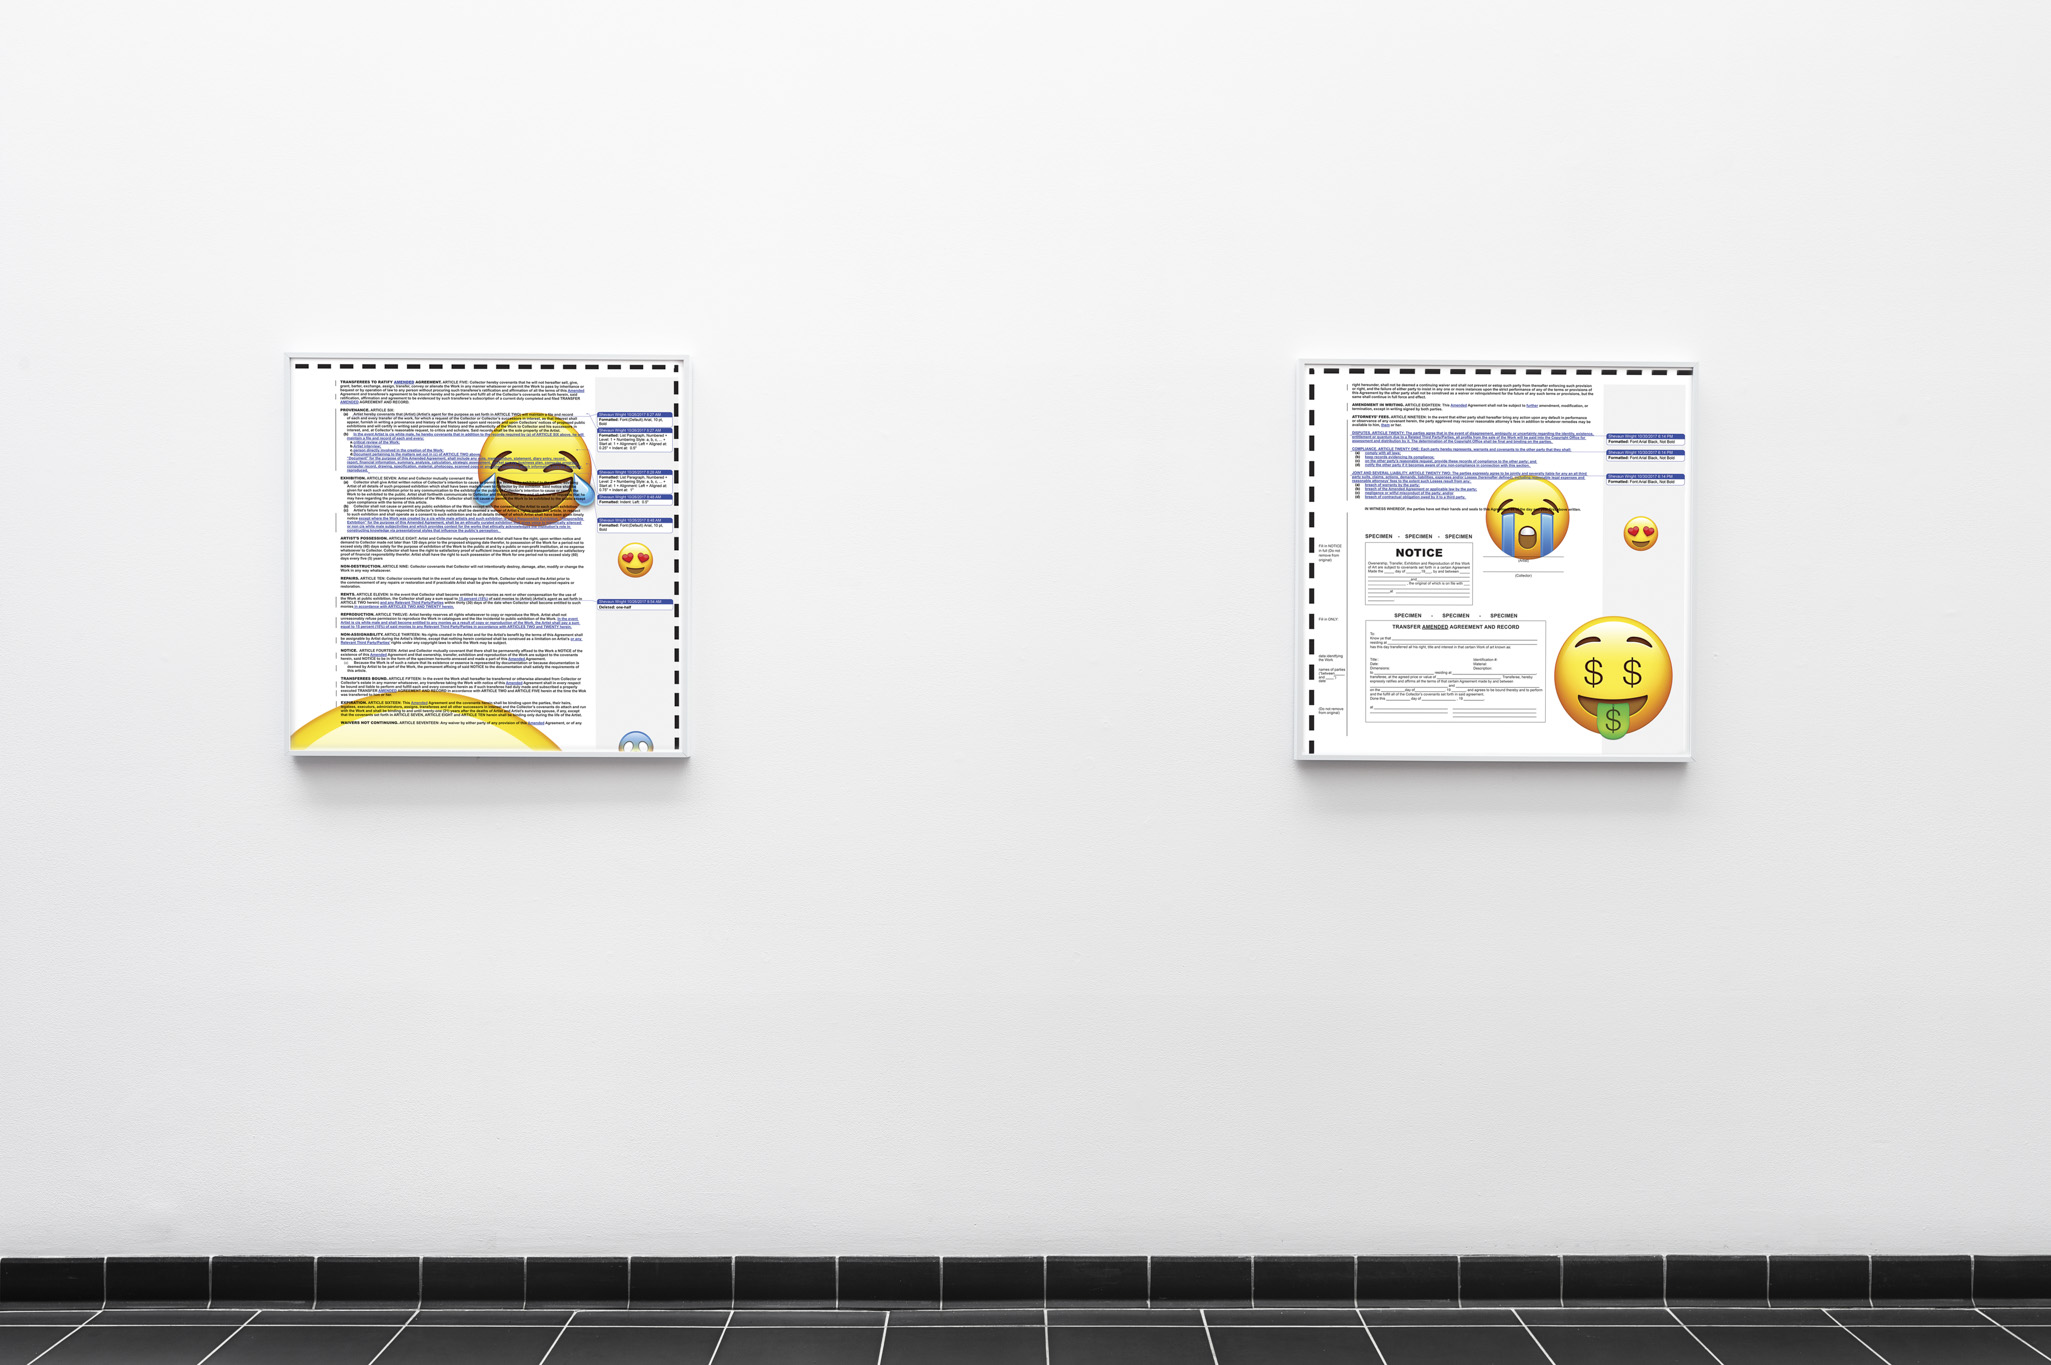 Two artworks line a hallway painted white. The artworks have white frames. The artworks feature a text document that shows edits, and a variety of emojis overlaying the text.